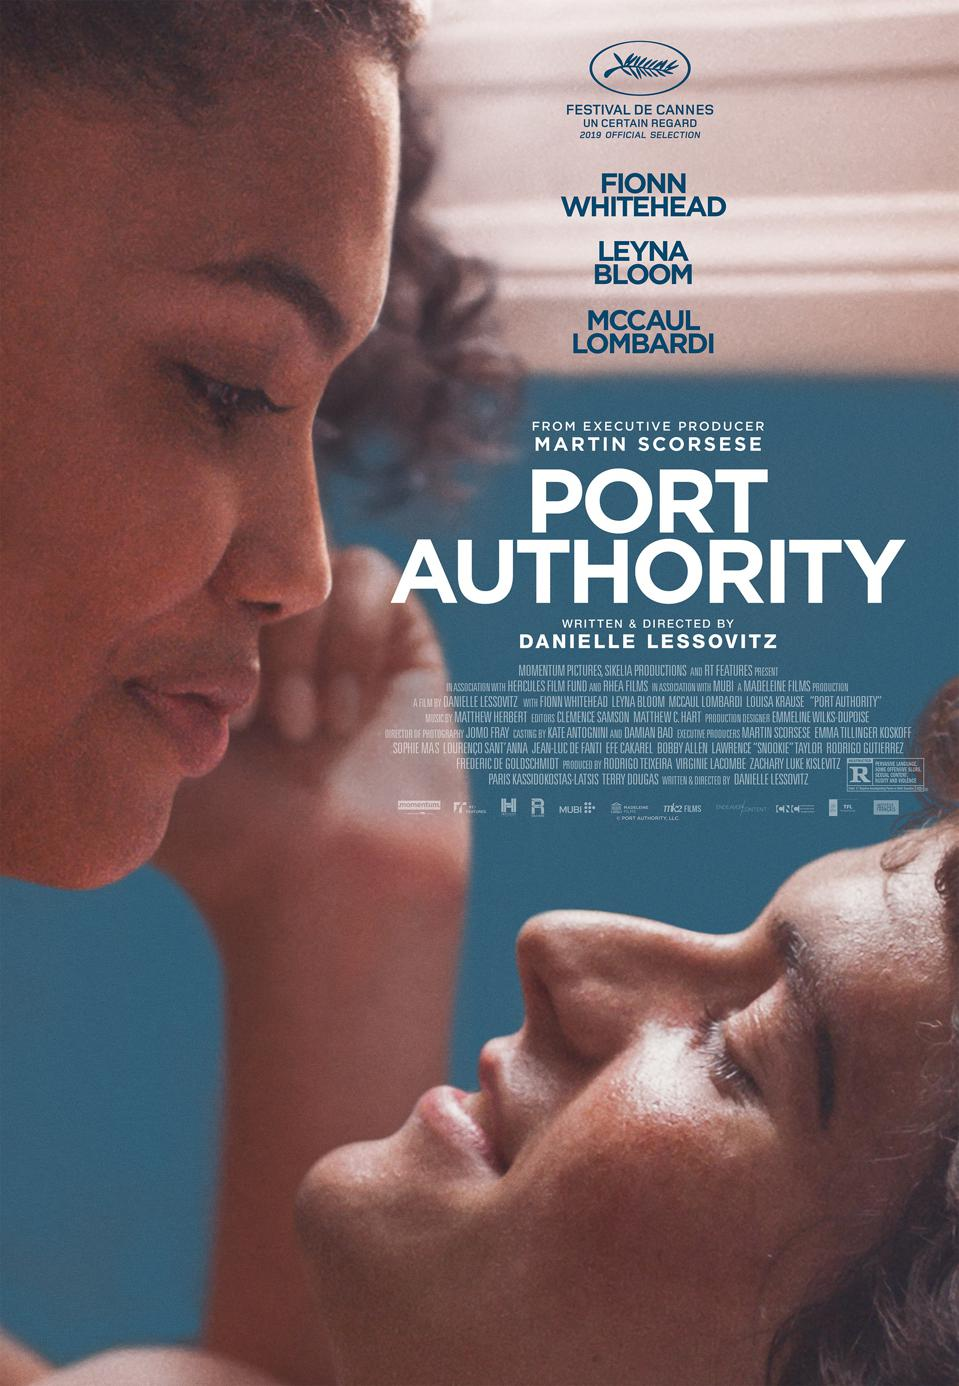 Leyna Bloom and Fionn Whitehead star in ″Port Authority.″